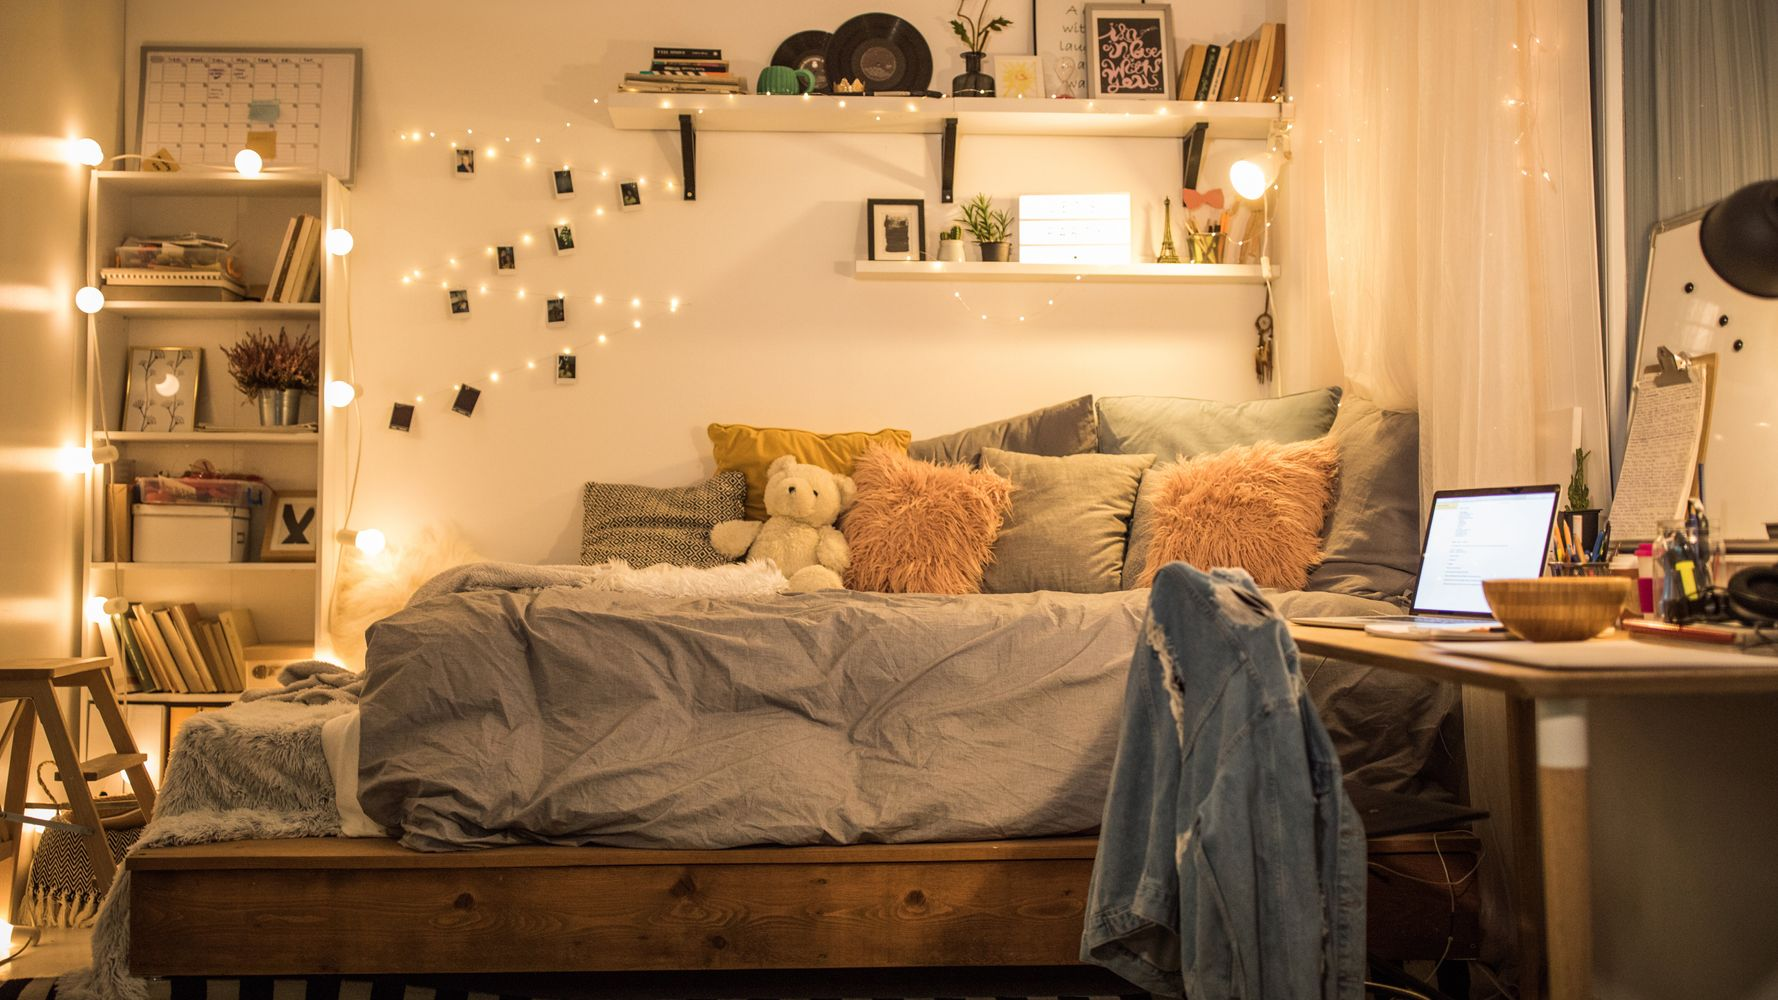 How To Make A Small Bedroom Look Bigger, According To ...